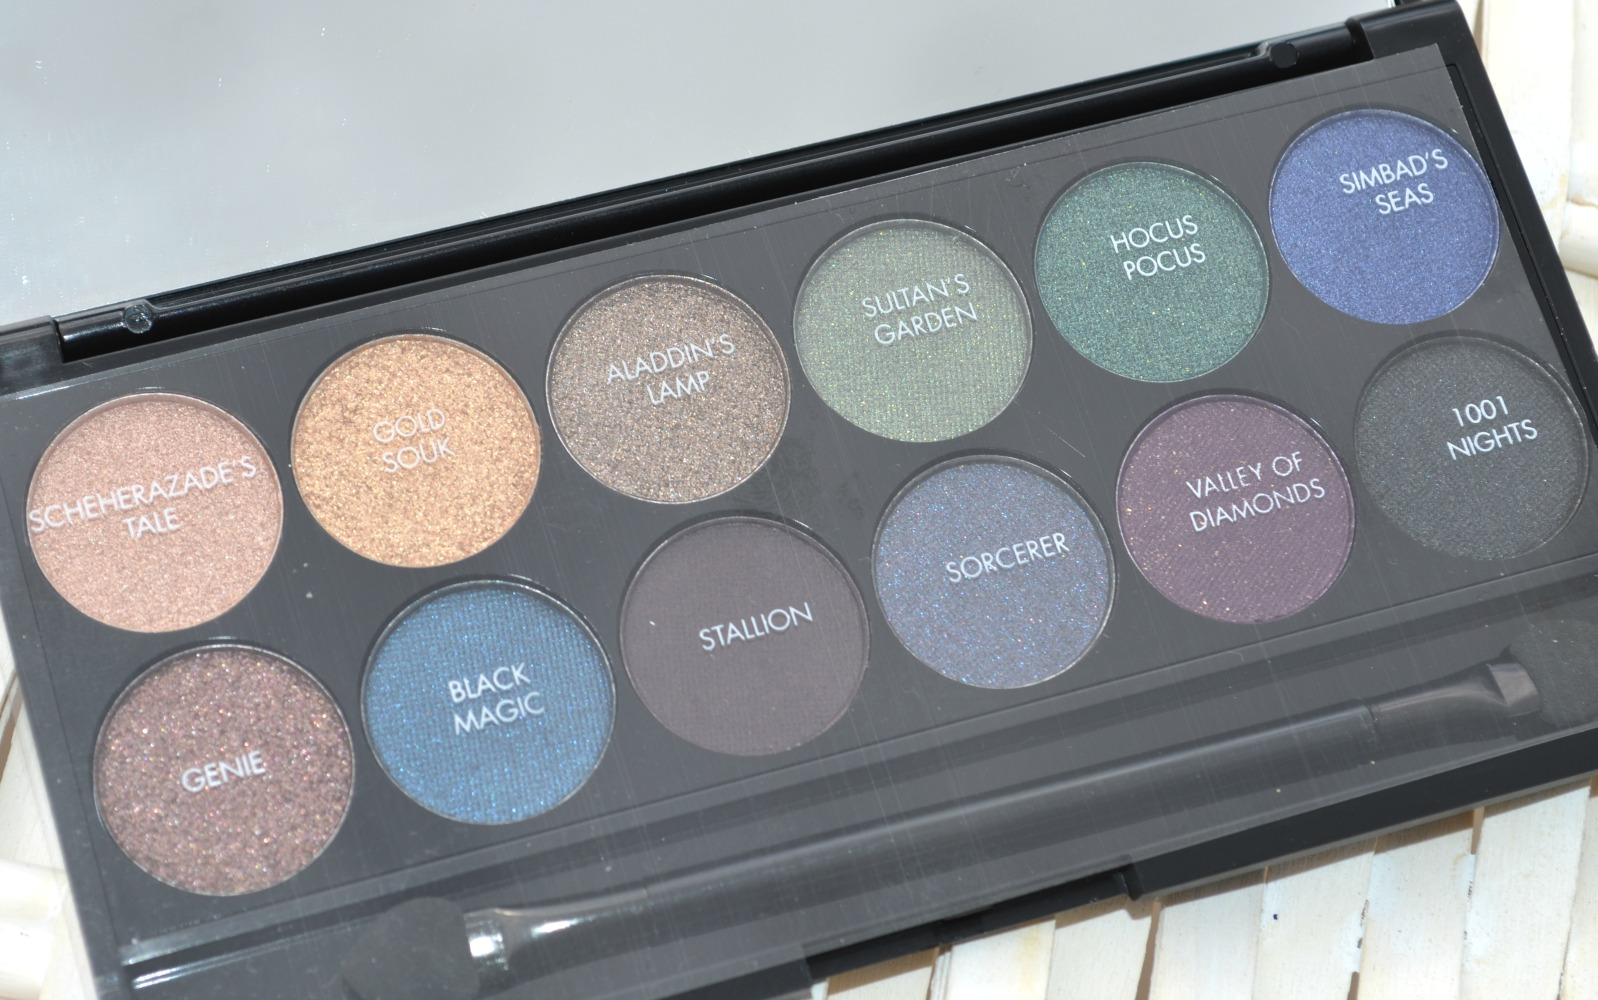 An image showing the eyeshadows inside the palette